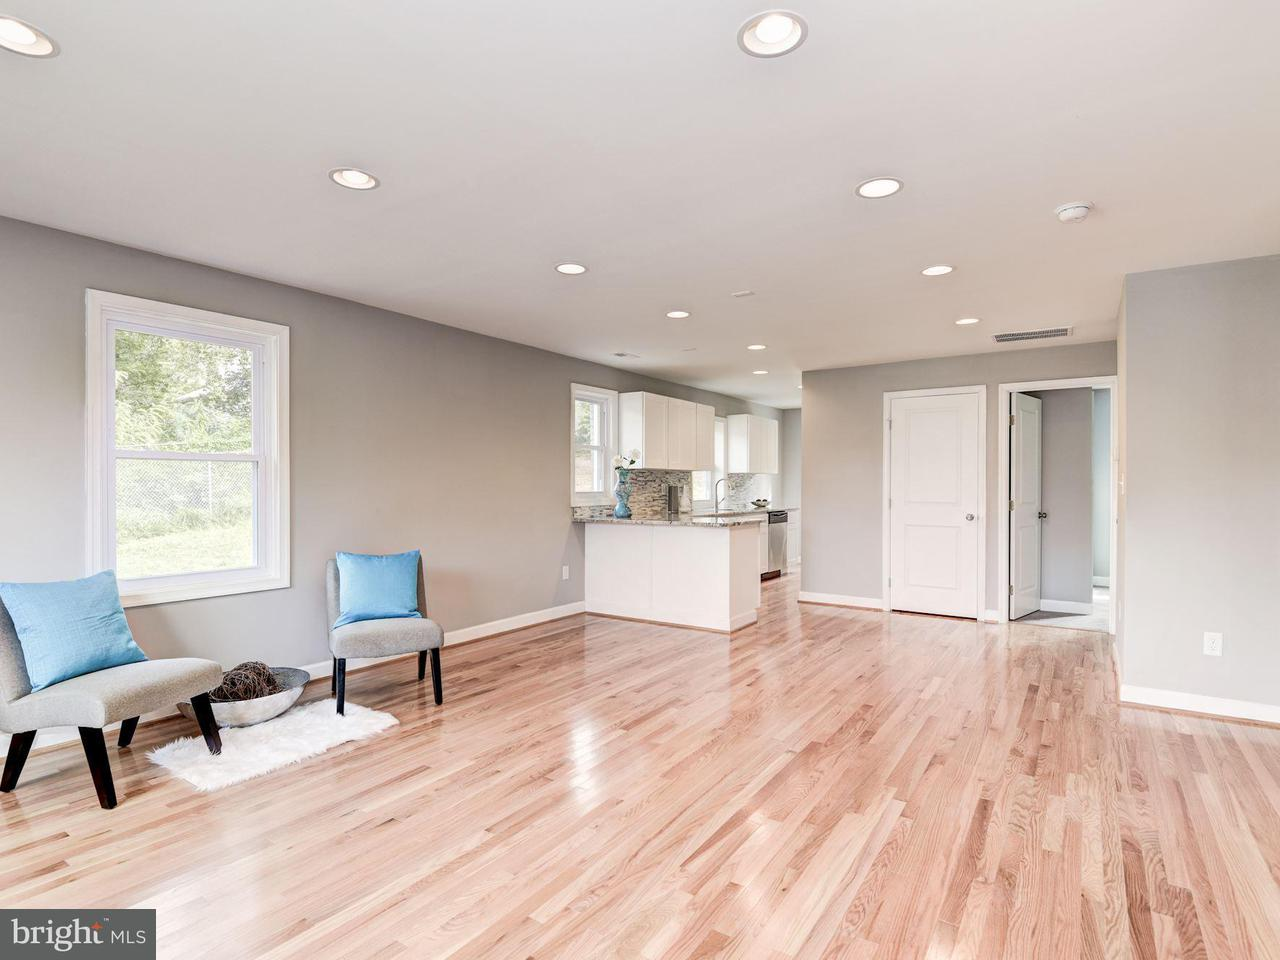 Single Family for Sale at 5911 Foote St NE Washington, District Of Columbia 20019 United States